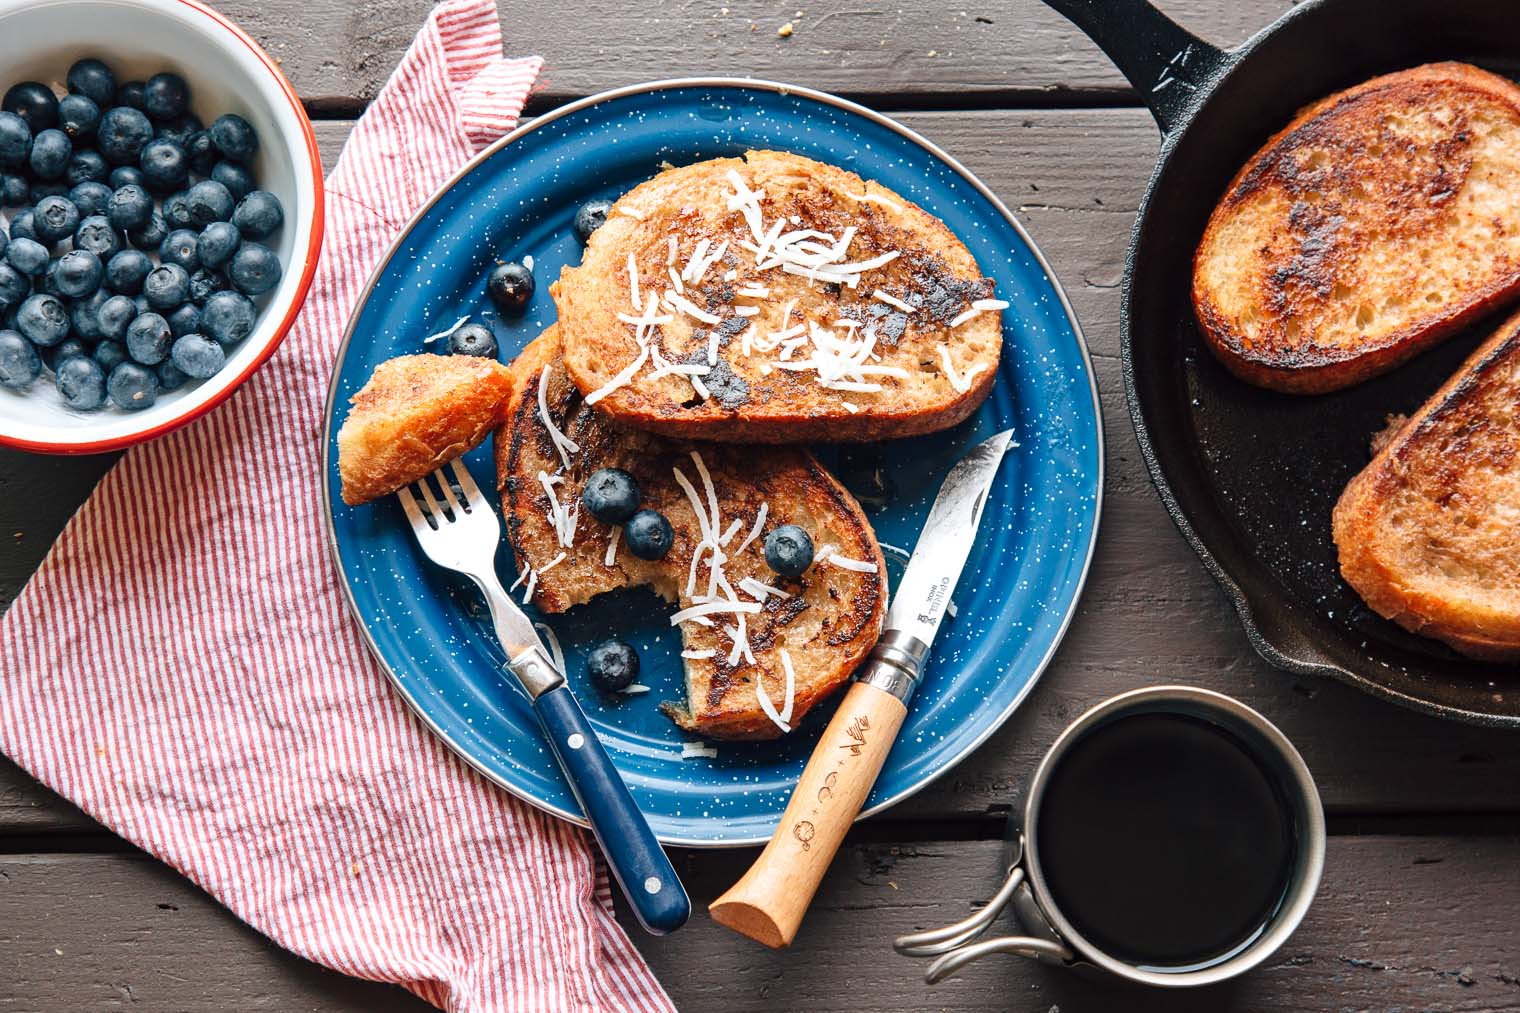 This vegan french toast made with coconut milk and bananas is sure to please everyone on your next camping trip!